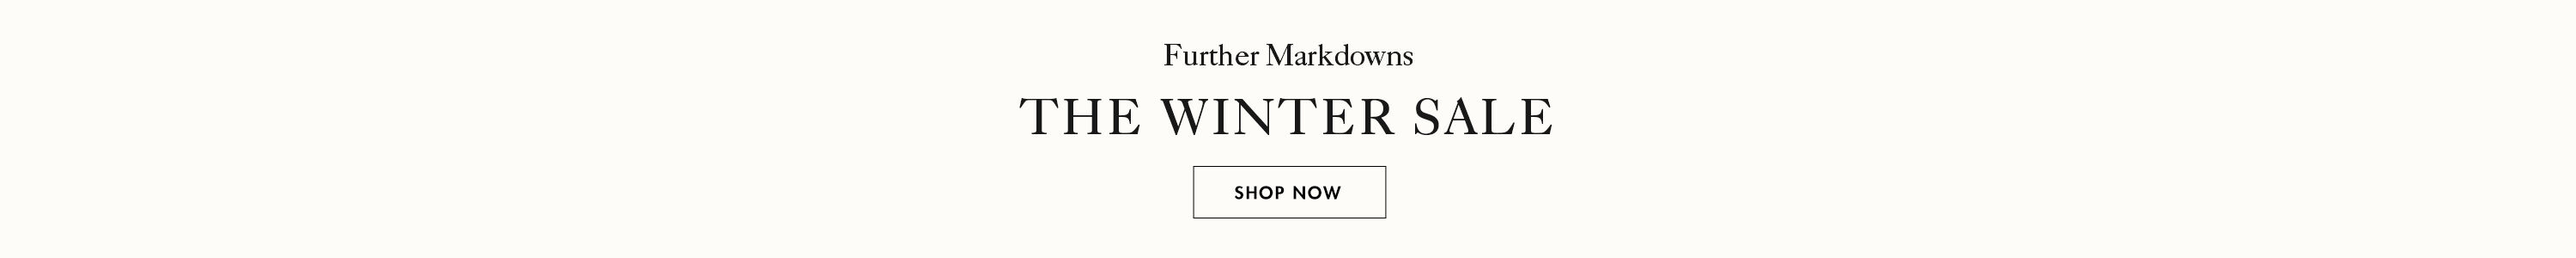 Further Markdowns